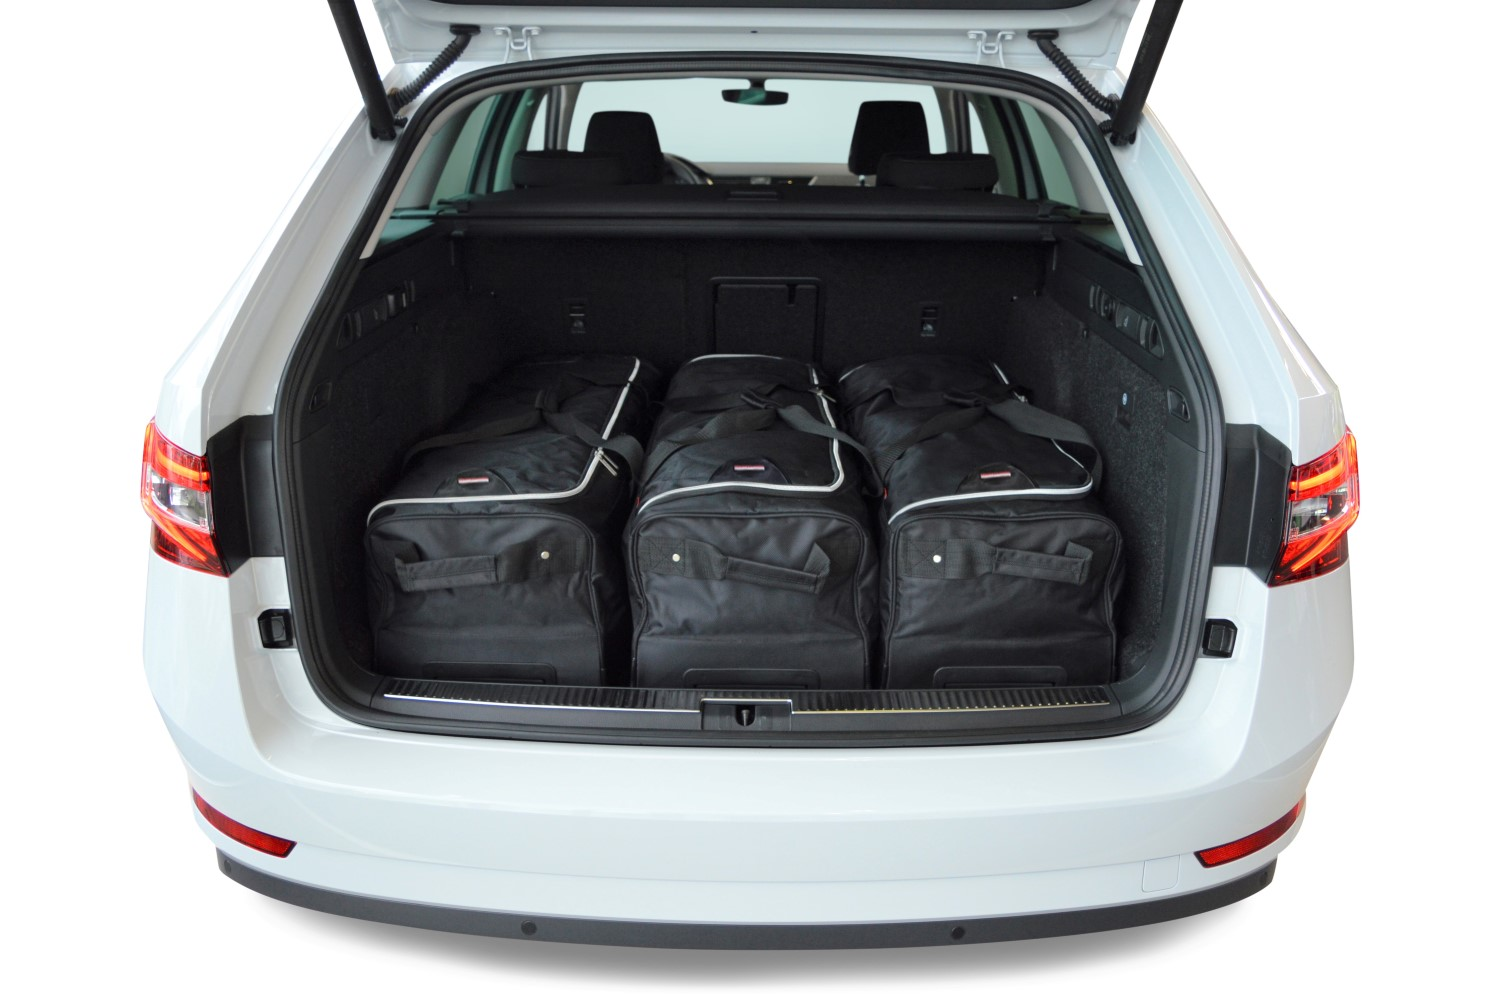 superb skoda superb iii 3v combi 2015 present car bags. Black Bedroom Furniture Sets. Home Design Ideas